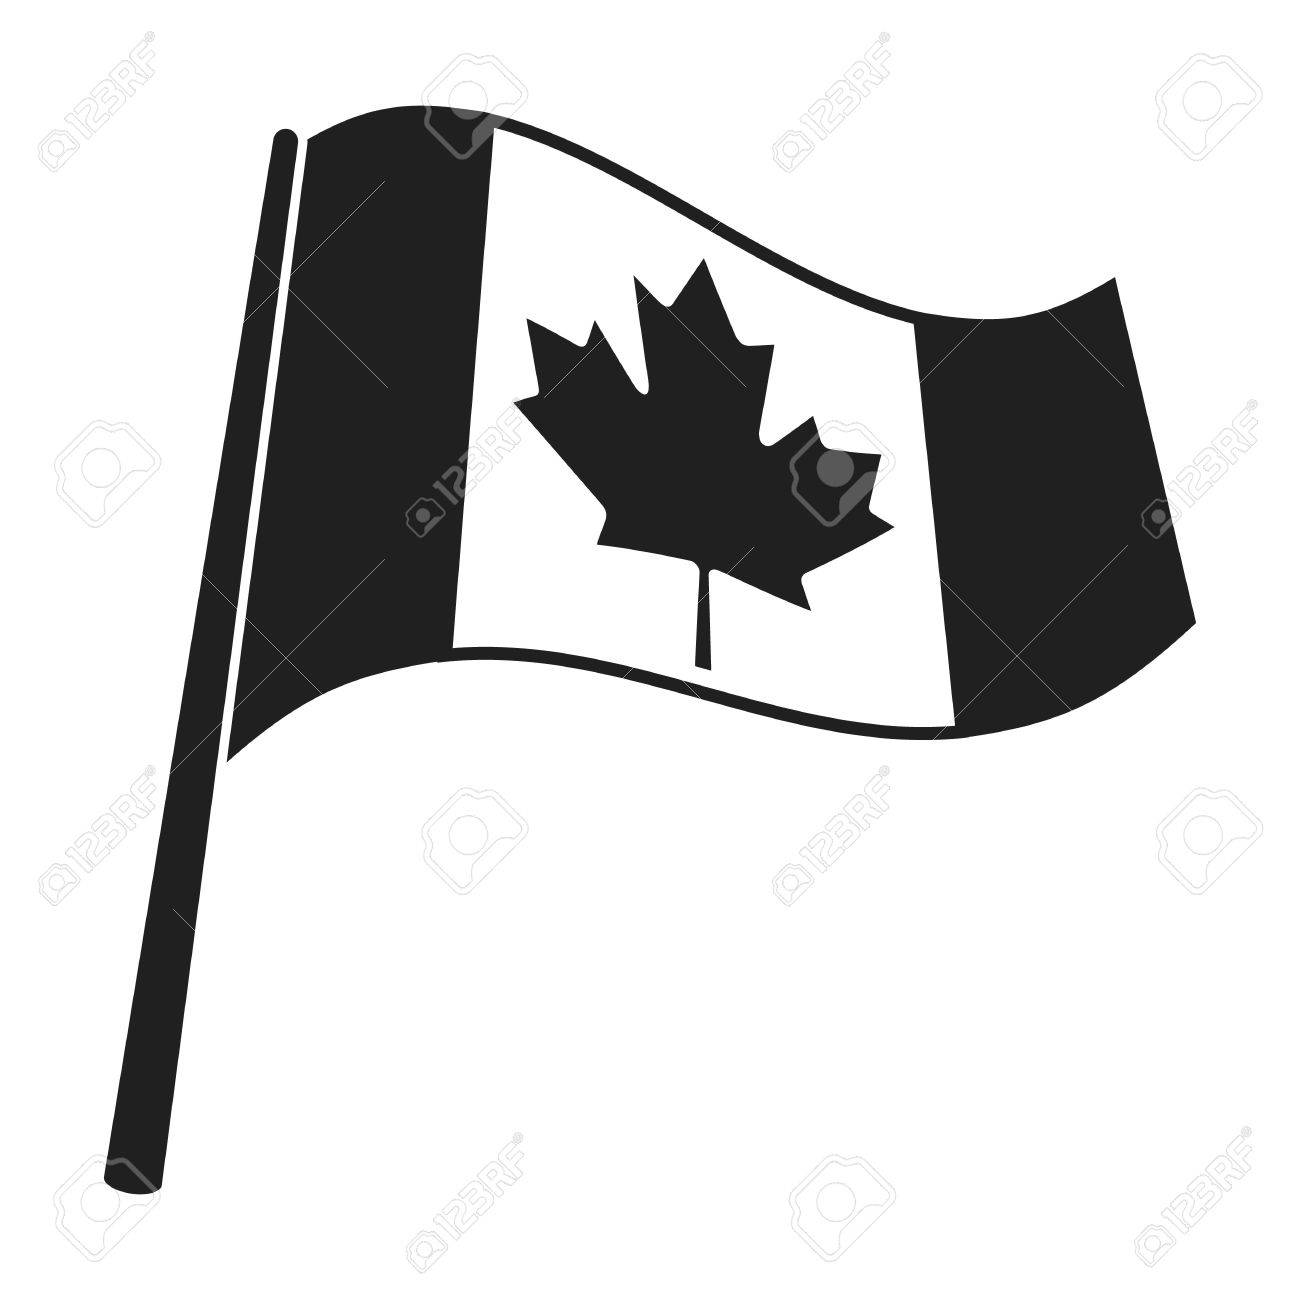 Canadian flag icon in black style isolated on white background.